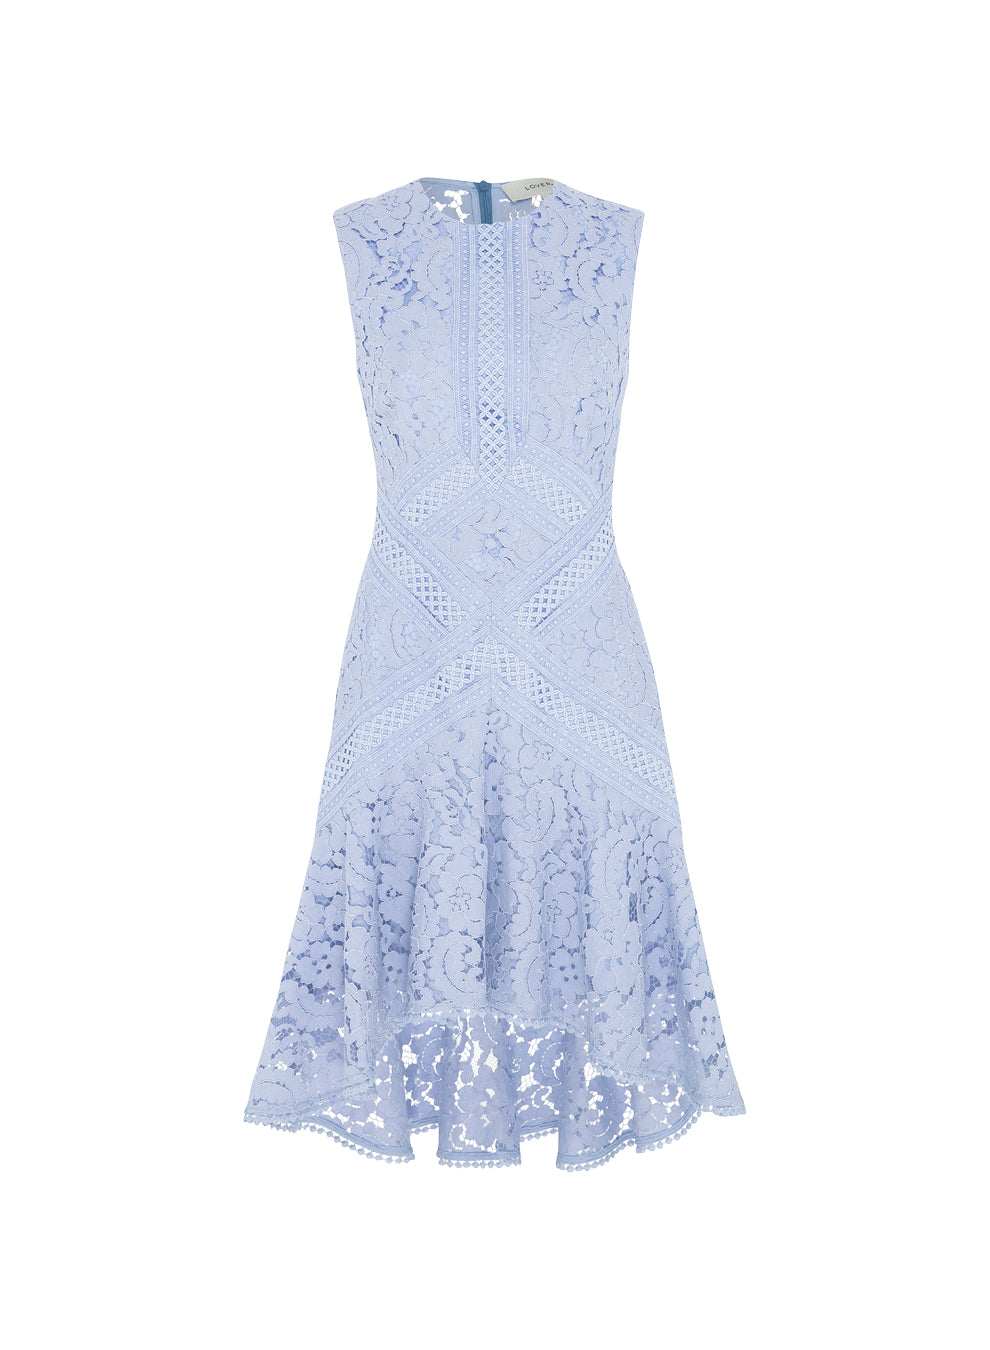 Melody Lace Flare Dress